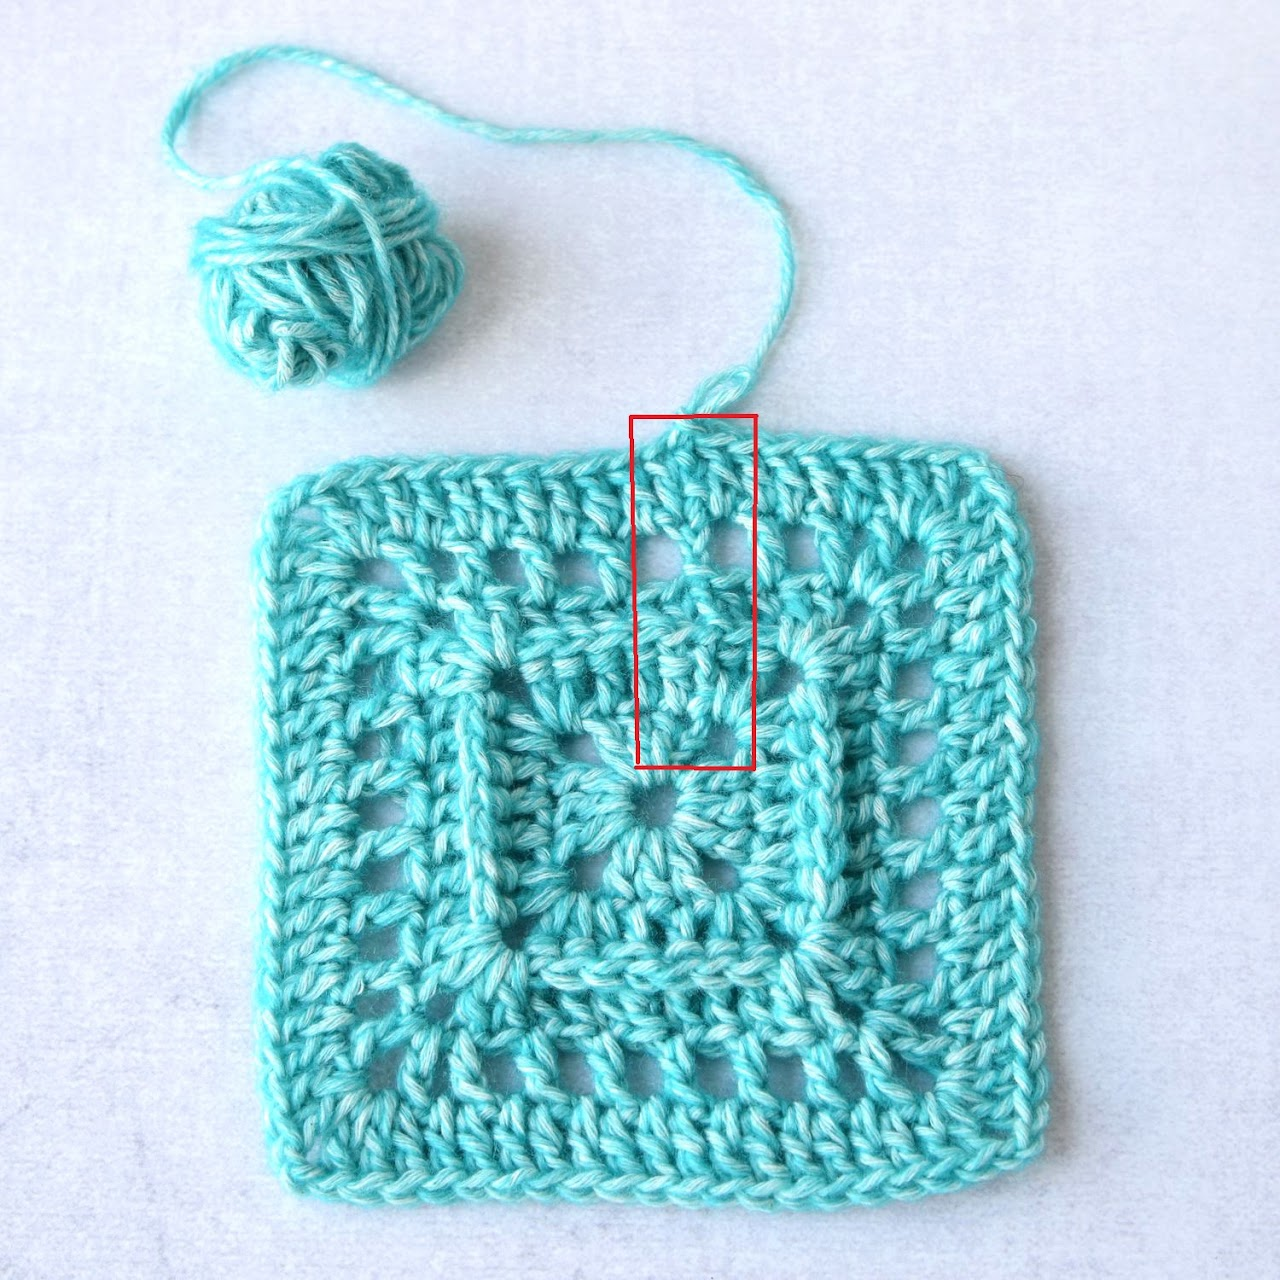 How to join crochet square in the corners - step-by-step photo-tutorial by www.lillabjorncrochet.com